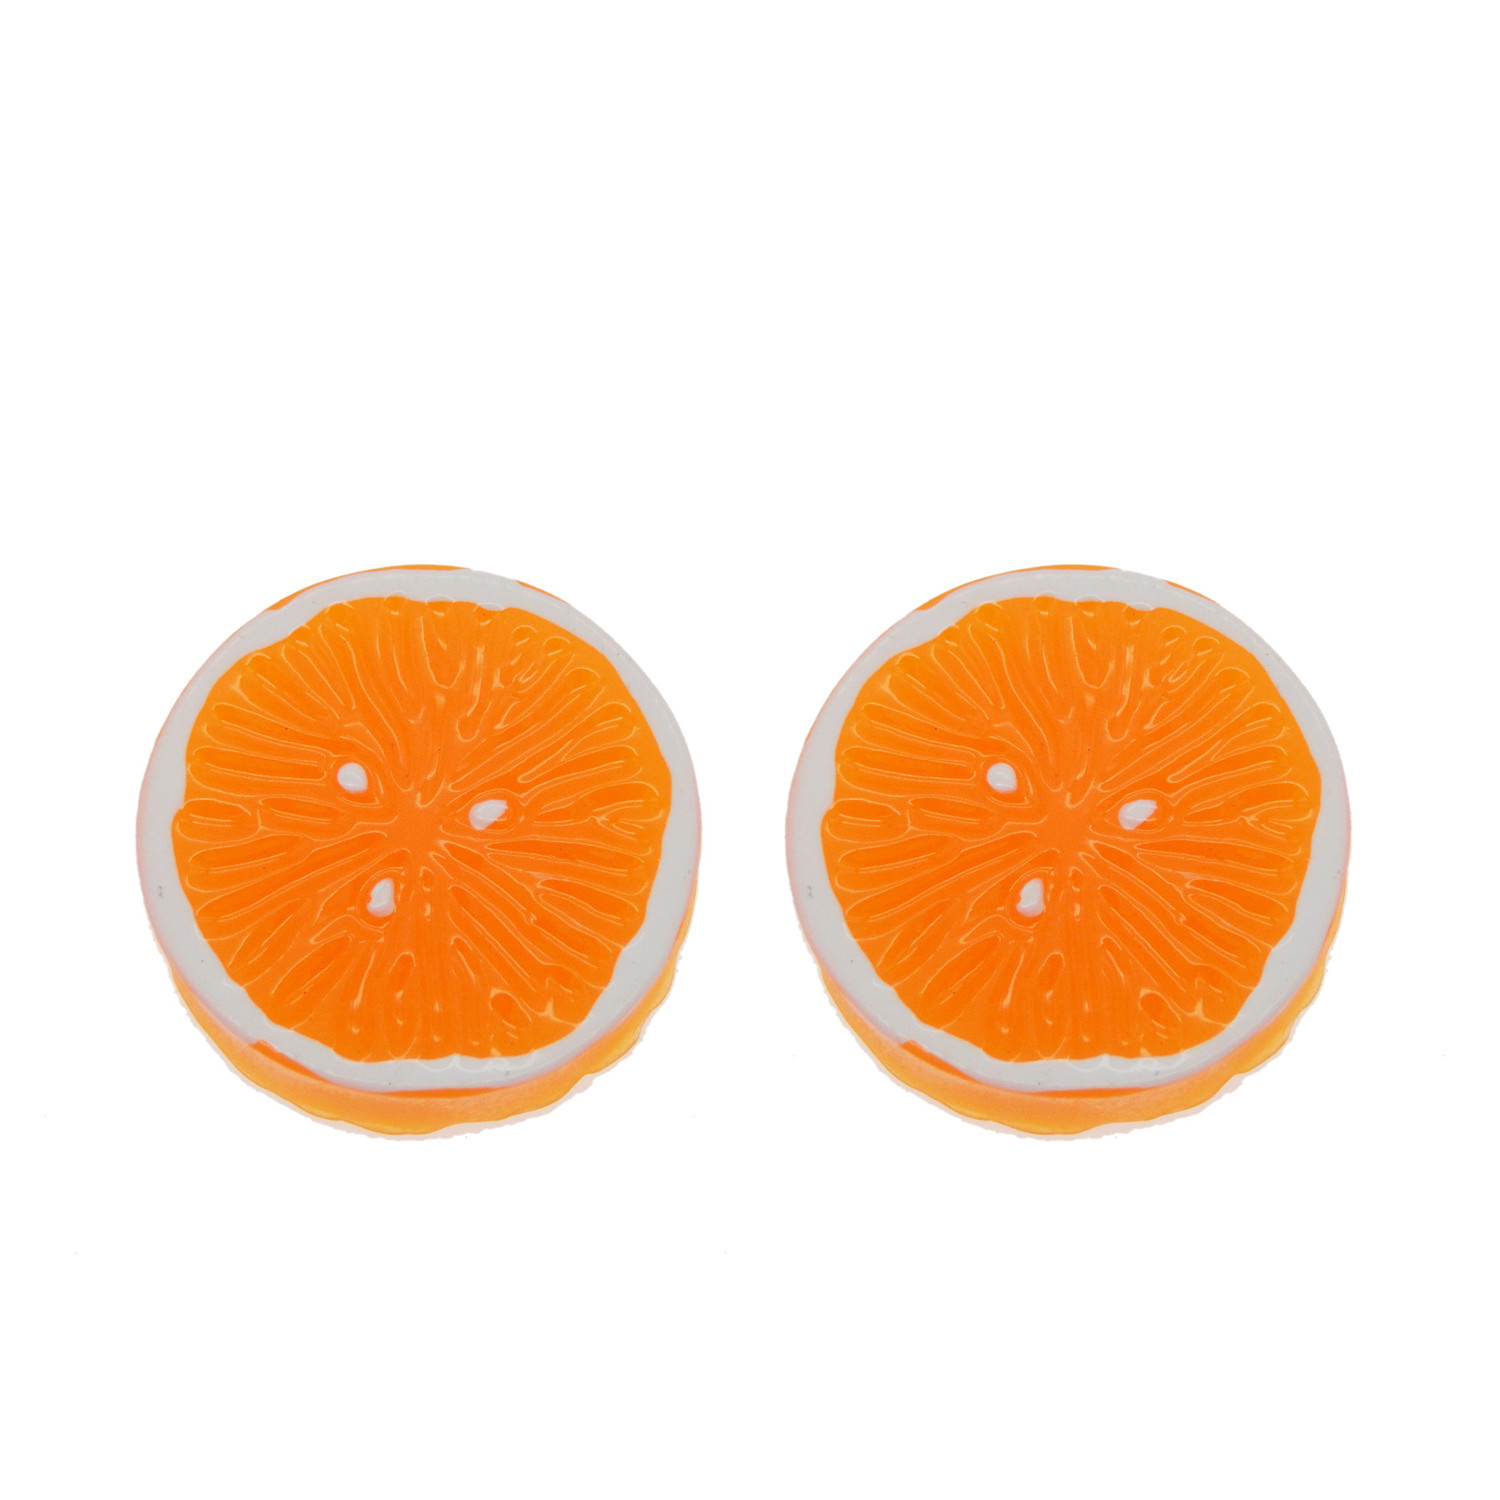 Pack of 12 Orange Piece Fruit Charms Pendants 27x27 mm DIY Jewellery Making